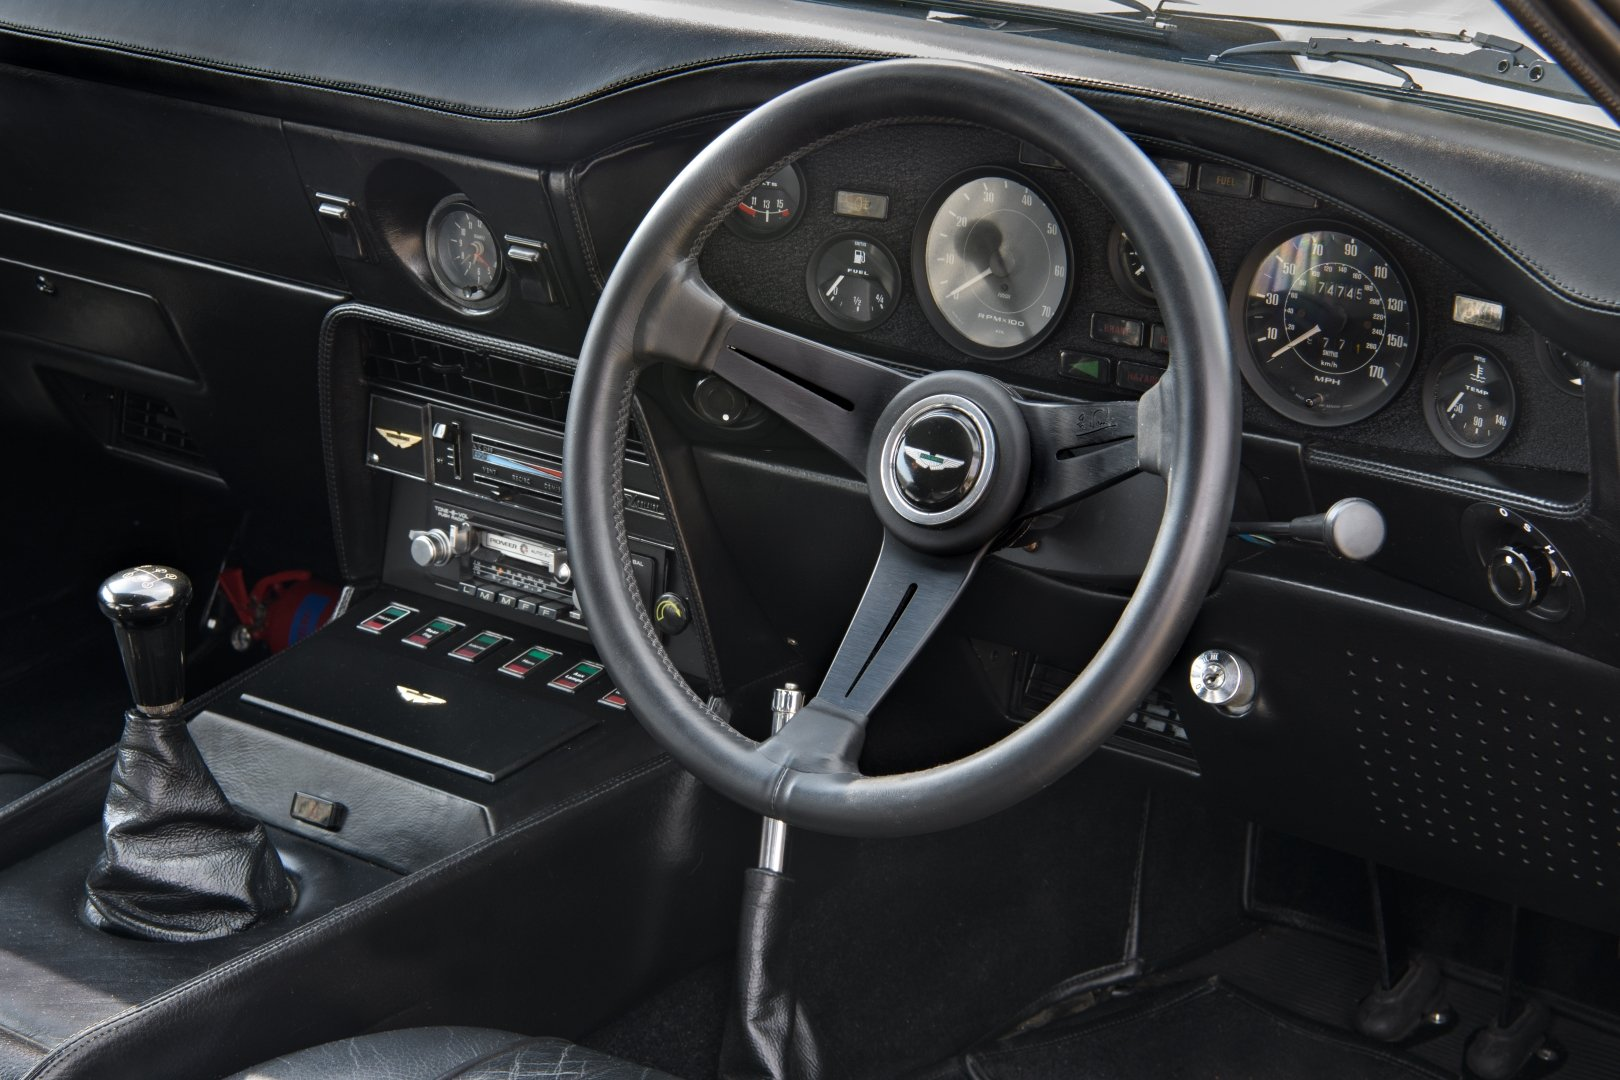 1978 Aston Martin V8 Vantage - Factory Works Demonstrator For Sale (picture 2 of 6)